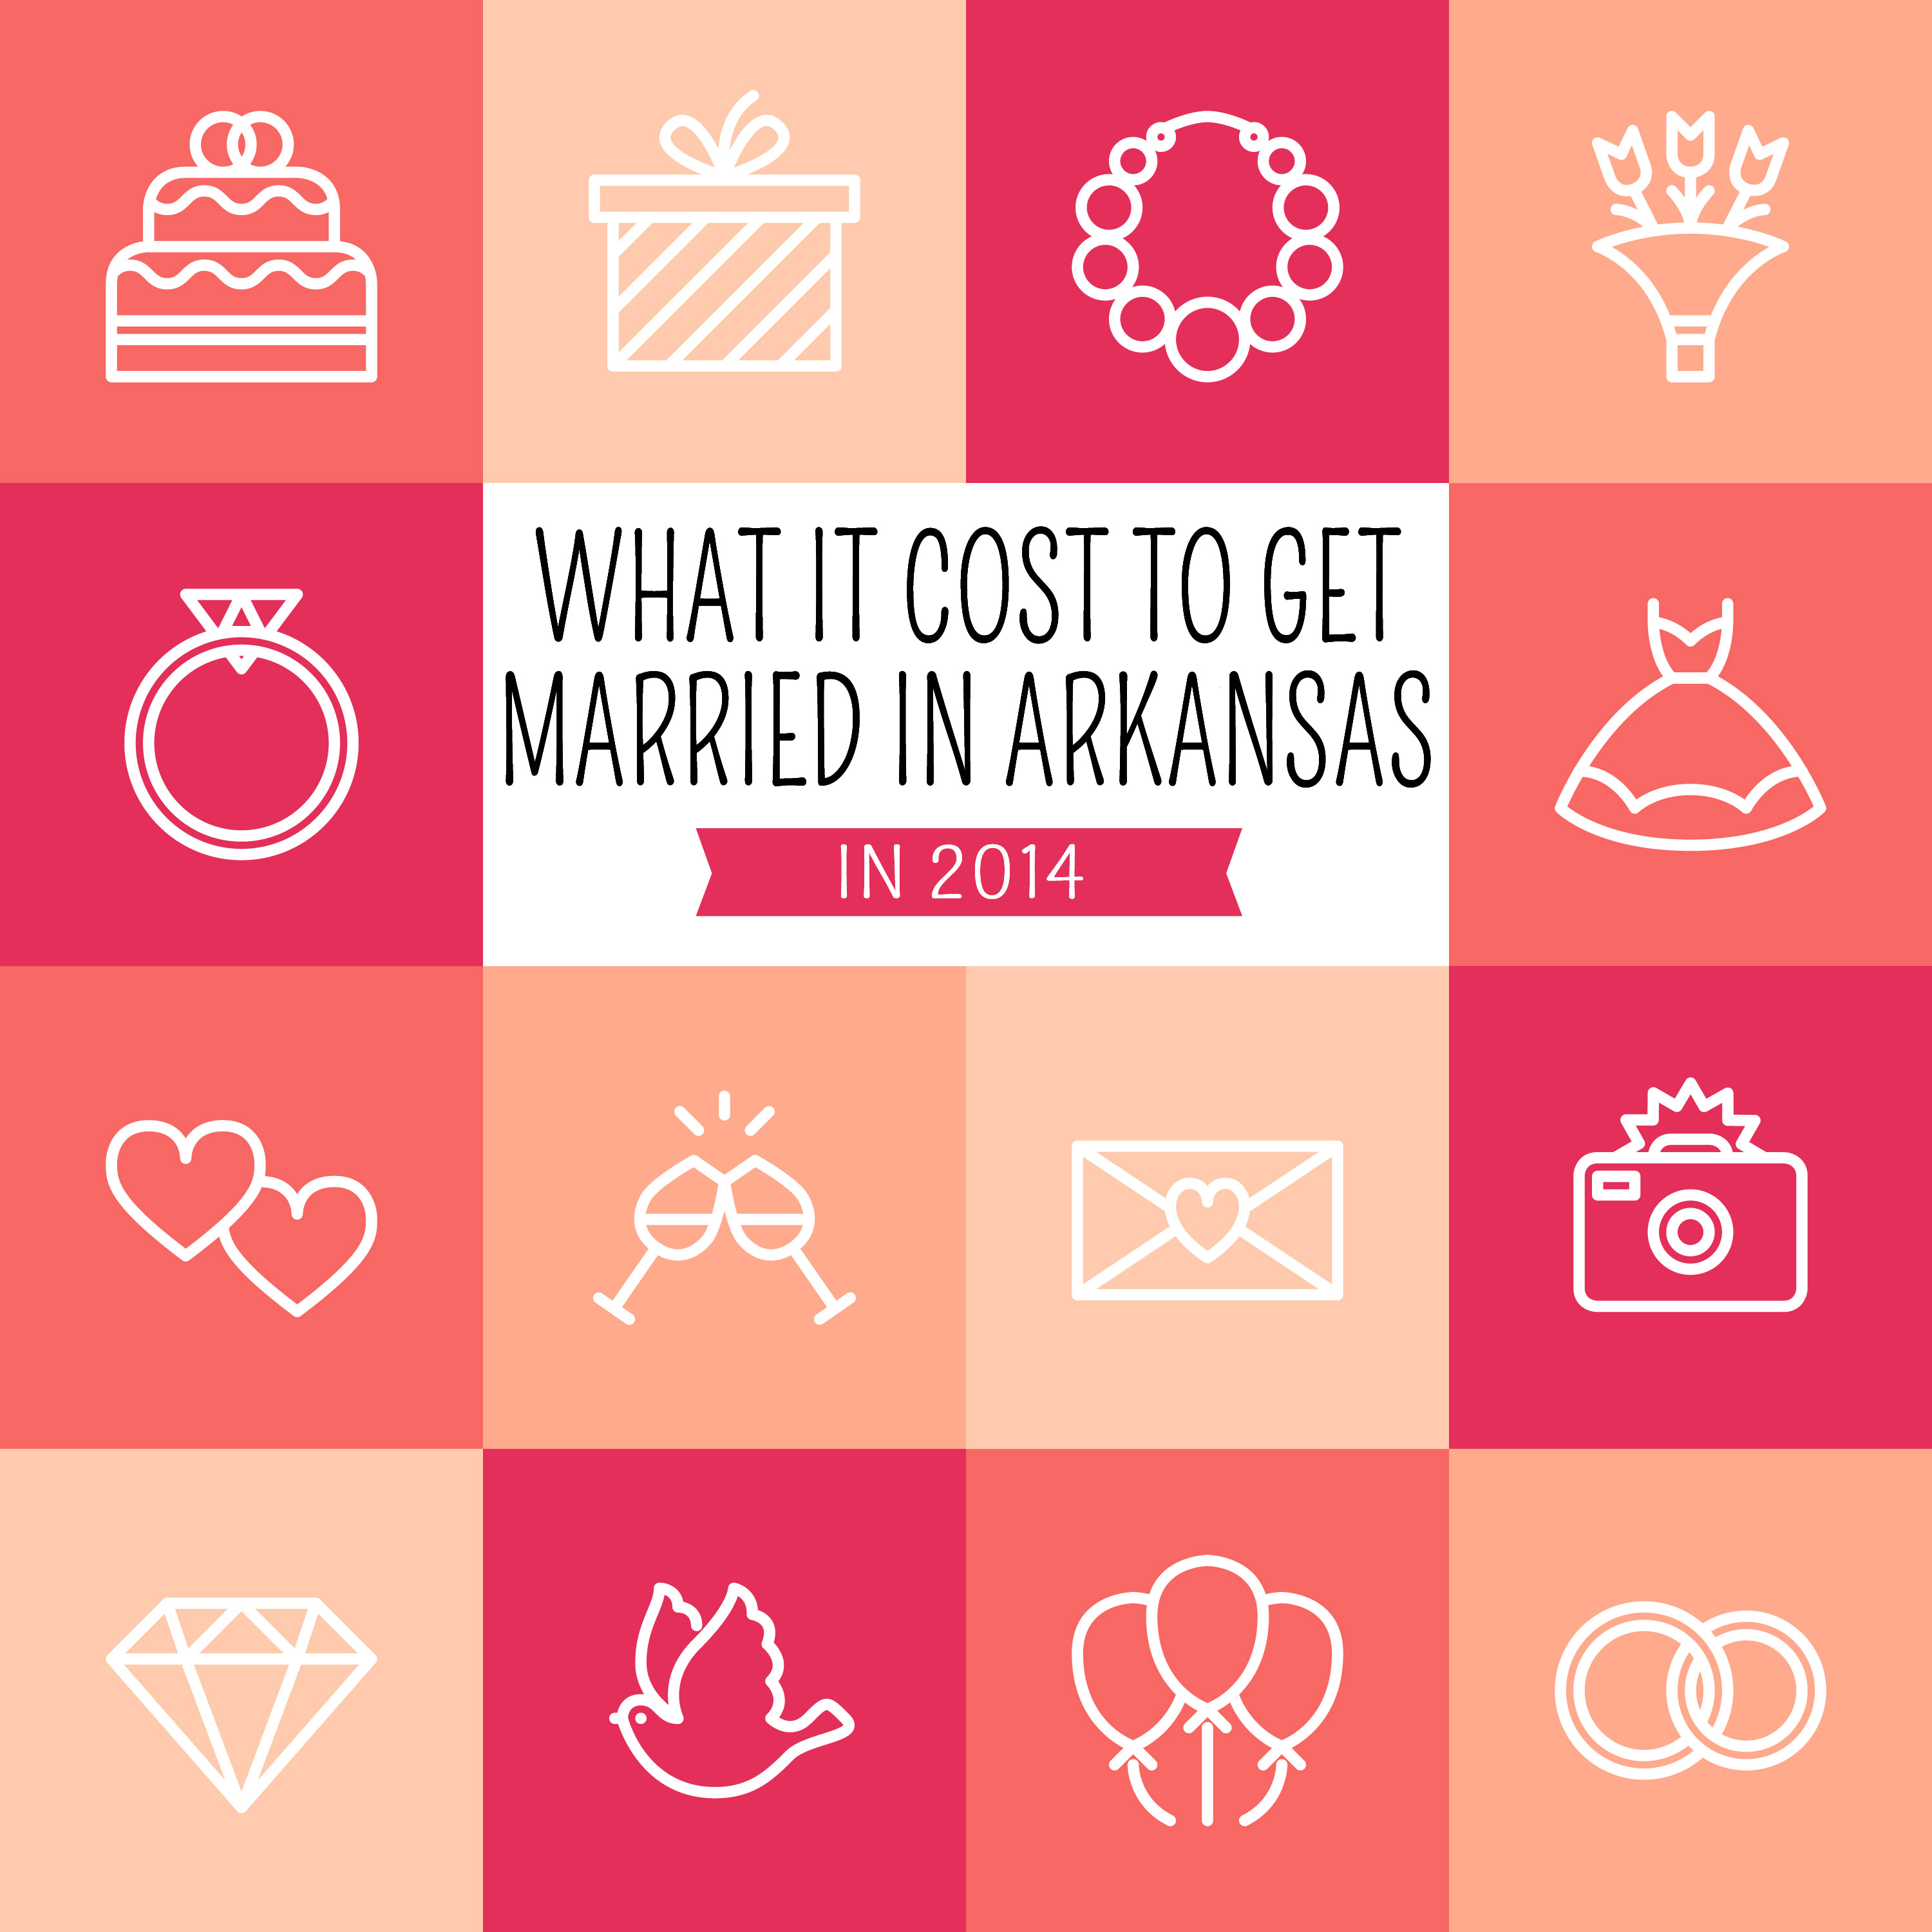 Average Cost Of Wedding Gift: Year In Review: How Much Weddings Cost In Arkansas In 2014